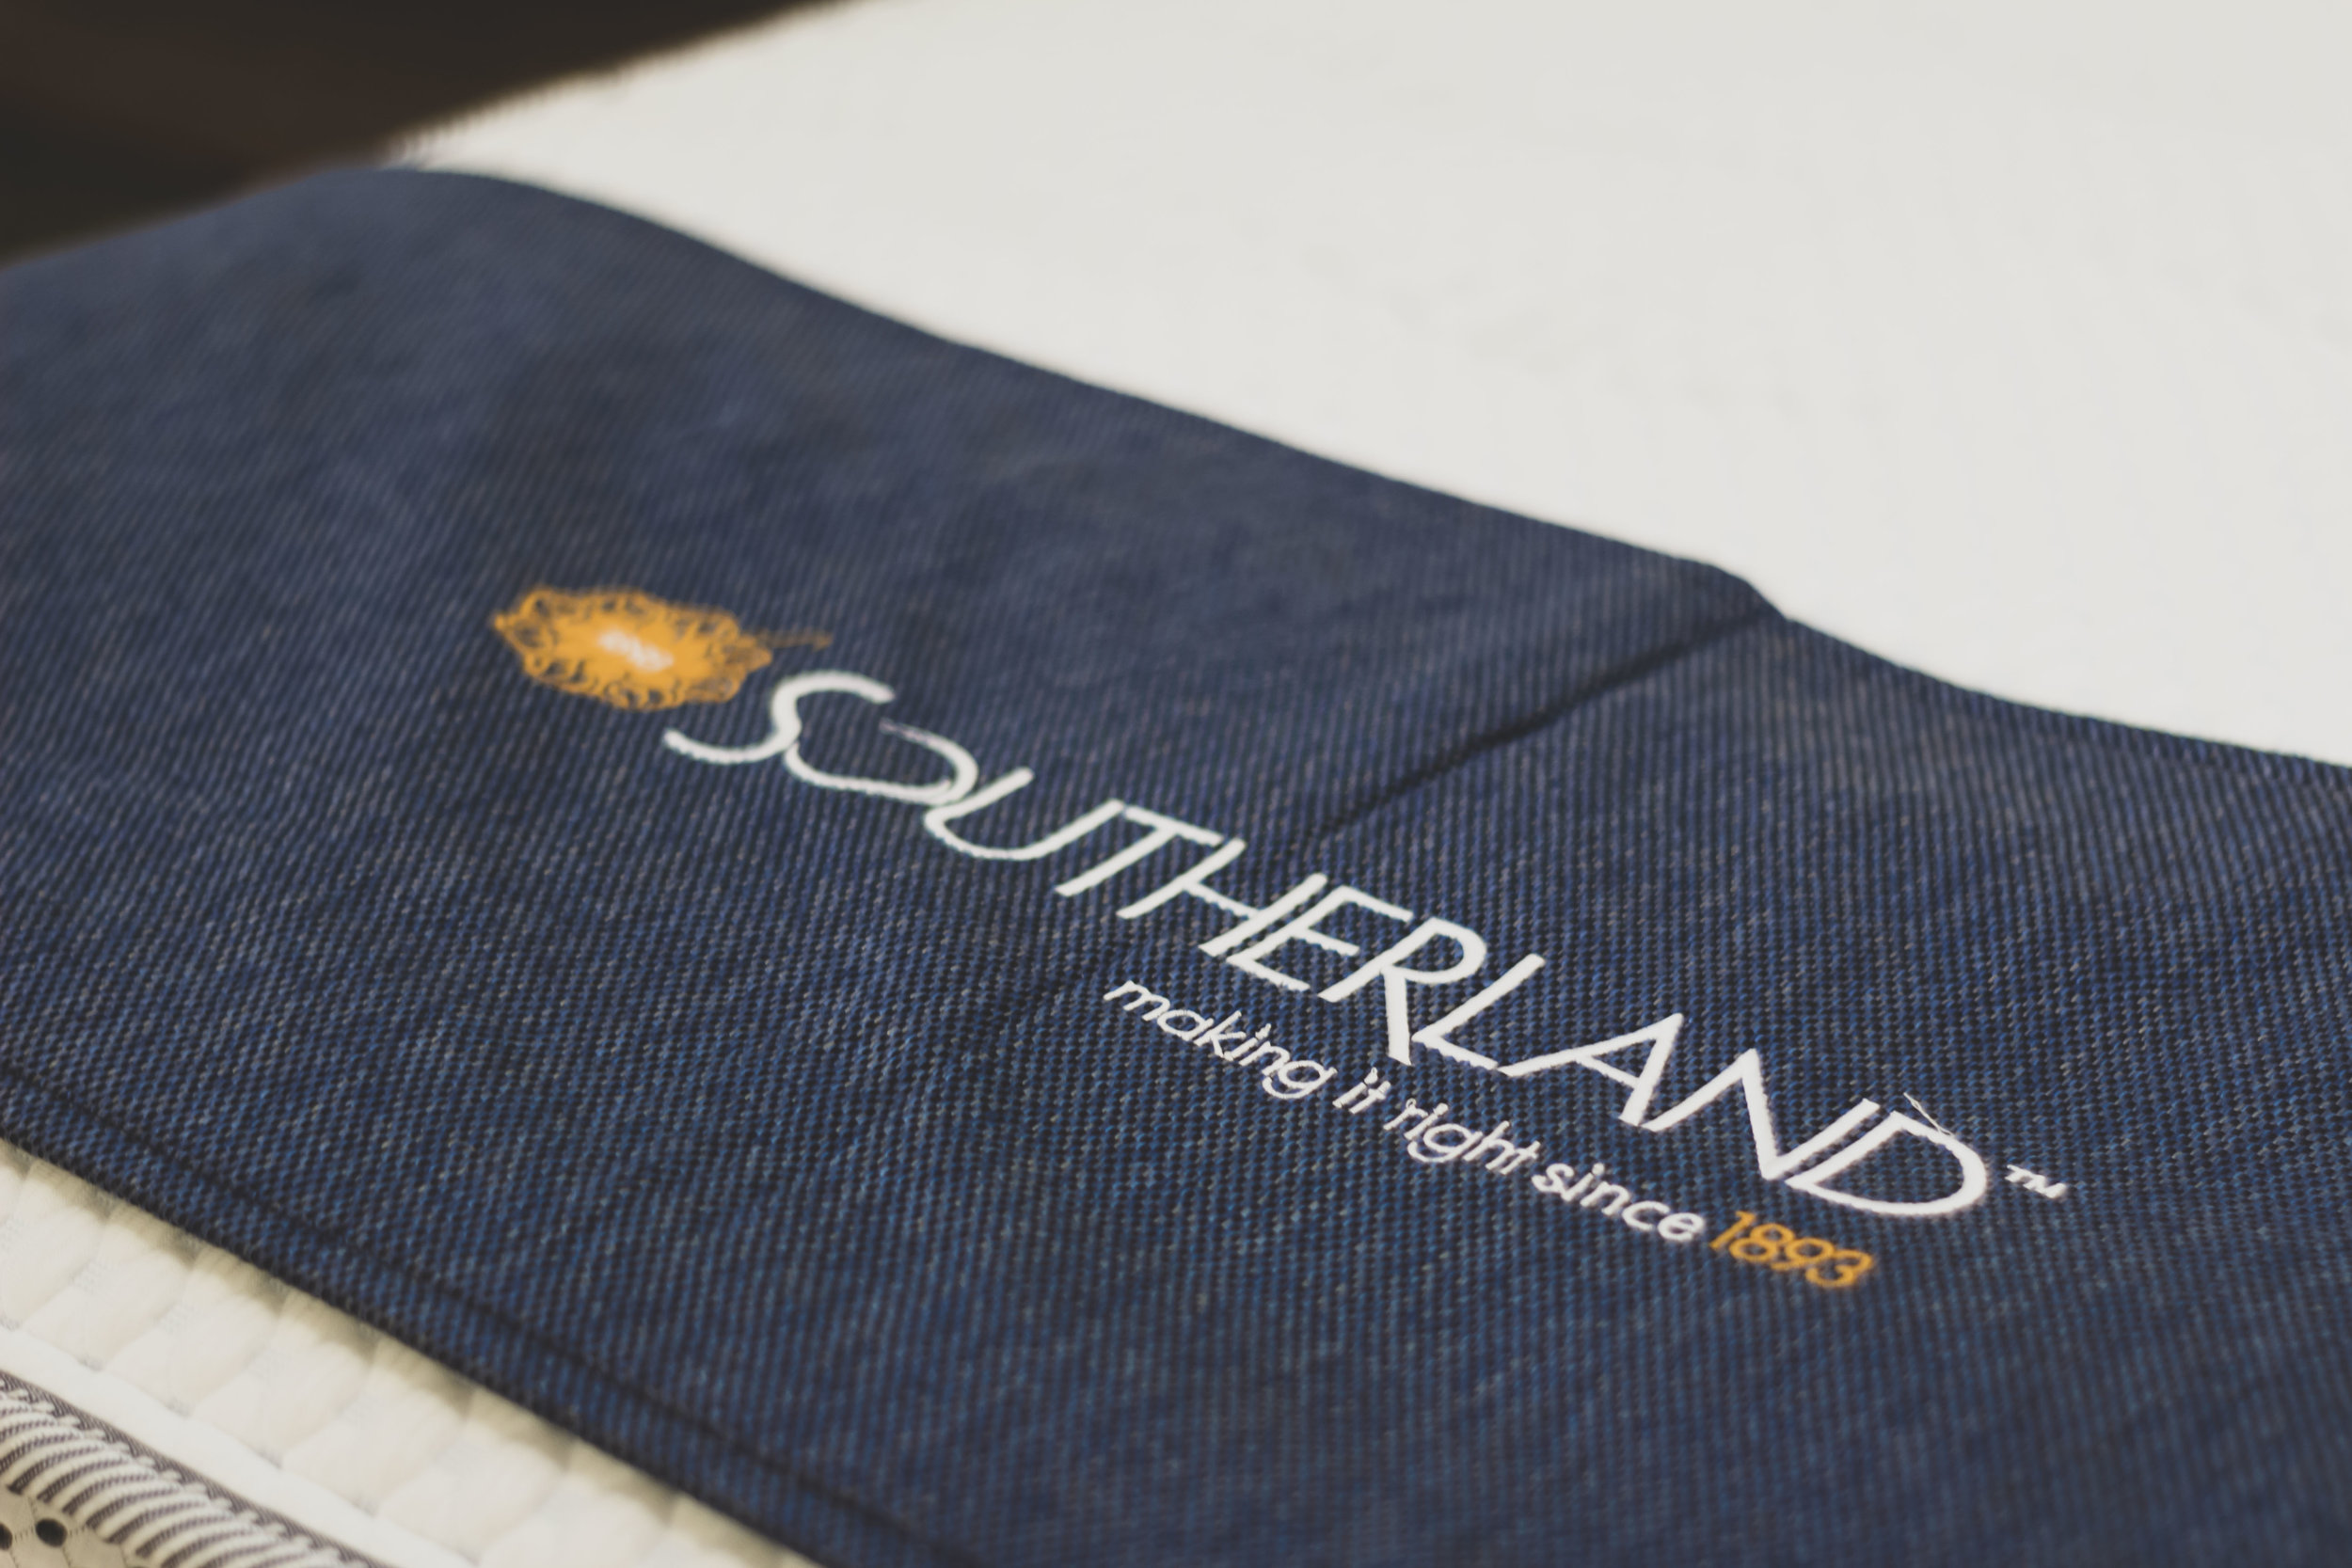 Southerland - For more than 120 years, we have been manufacturing some of the finest quality bedding available anywhere in the United States. Millions of Americans are sleeping on a Southerland bed tonight and we're proud that each of our mattresses are made in the USA.